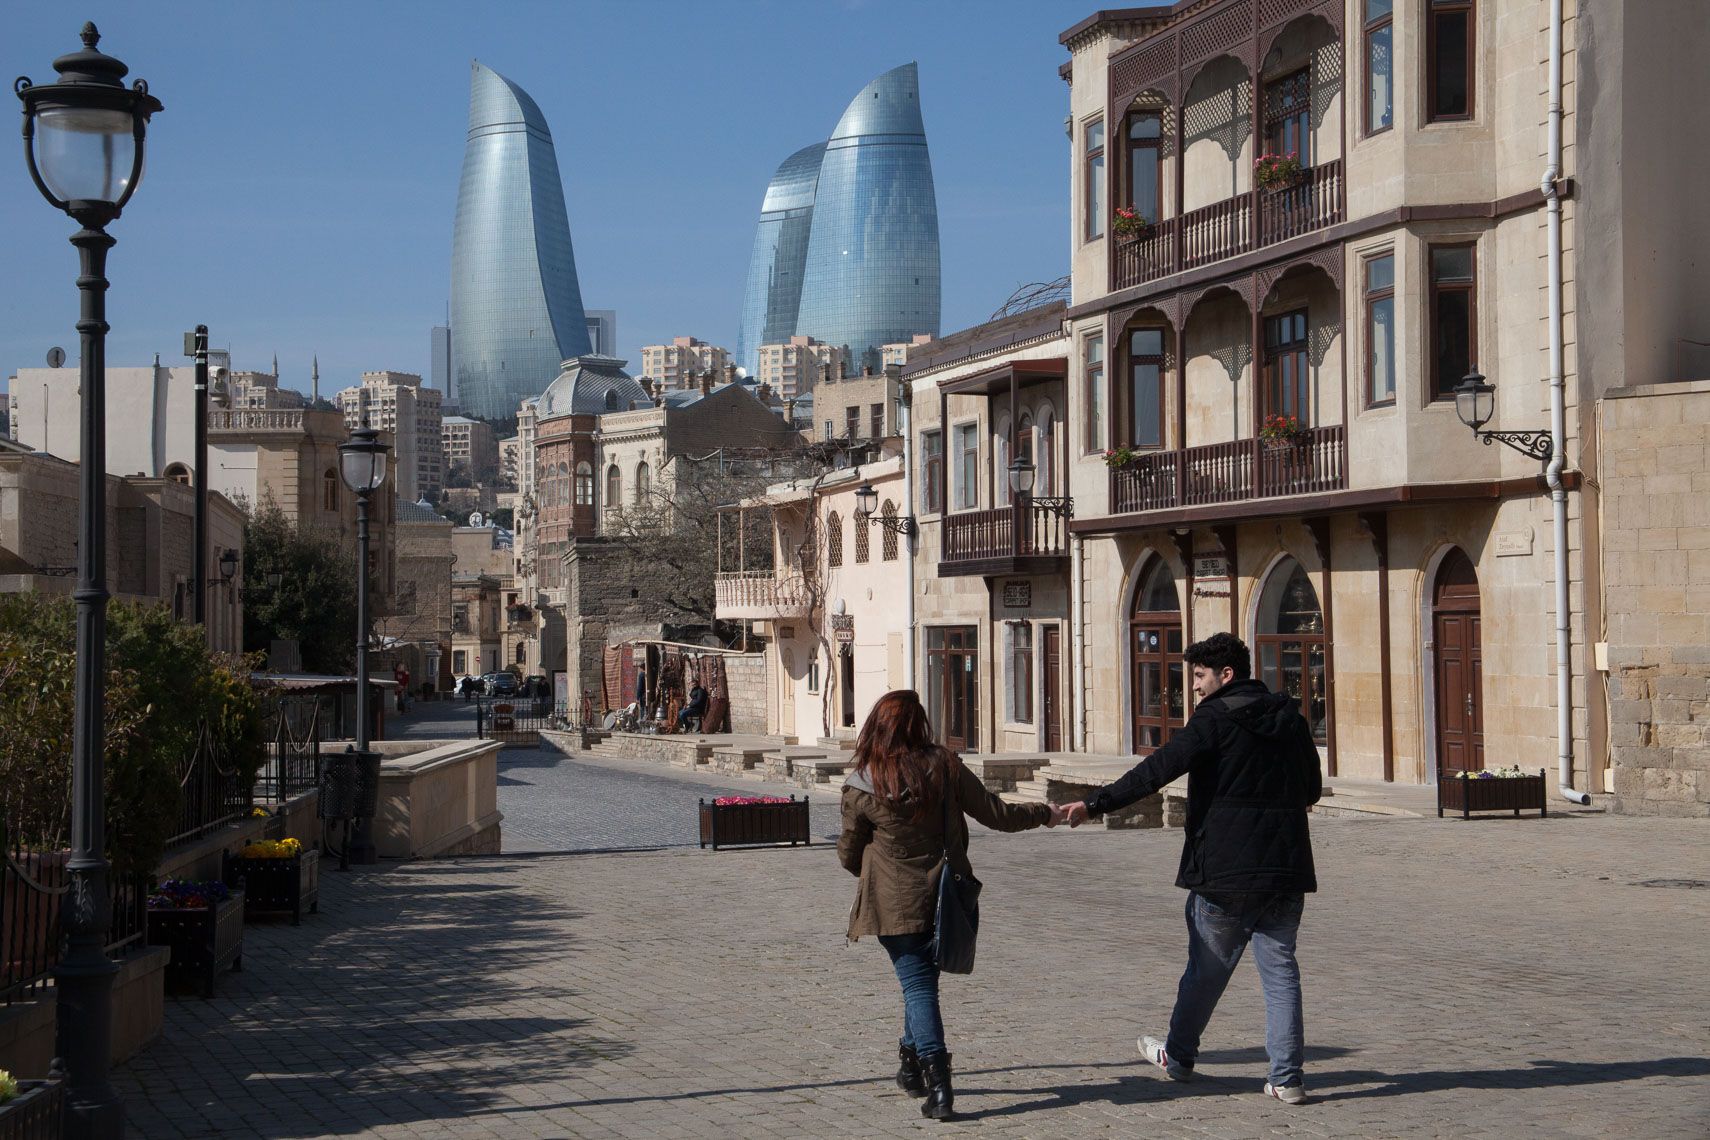 1202Baku Azerbaijan, the Flame Towers, Old City